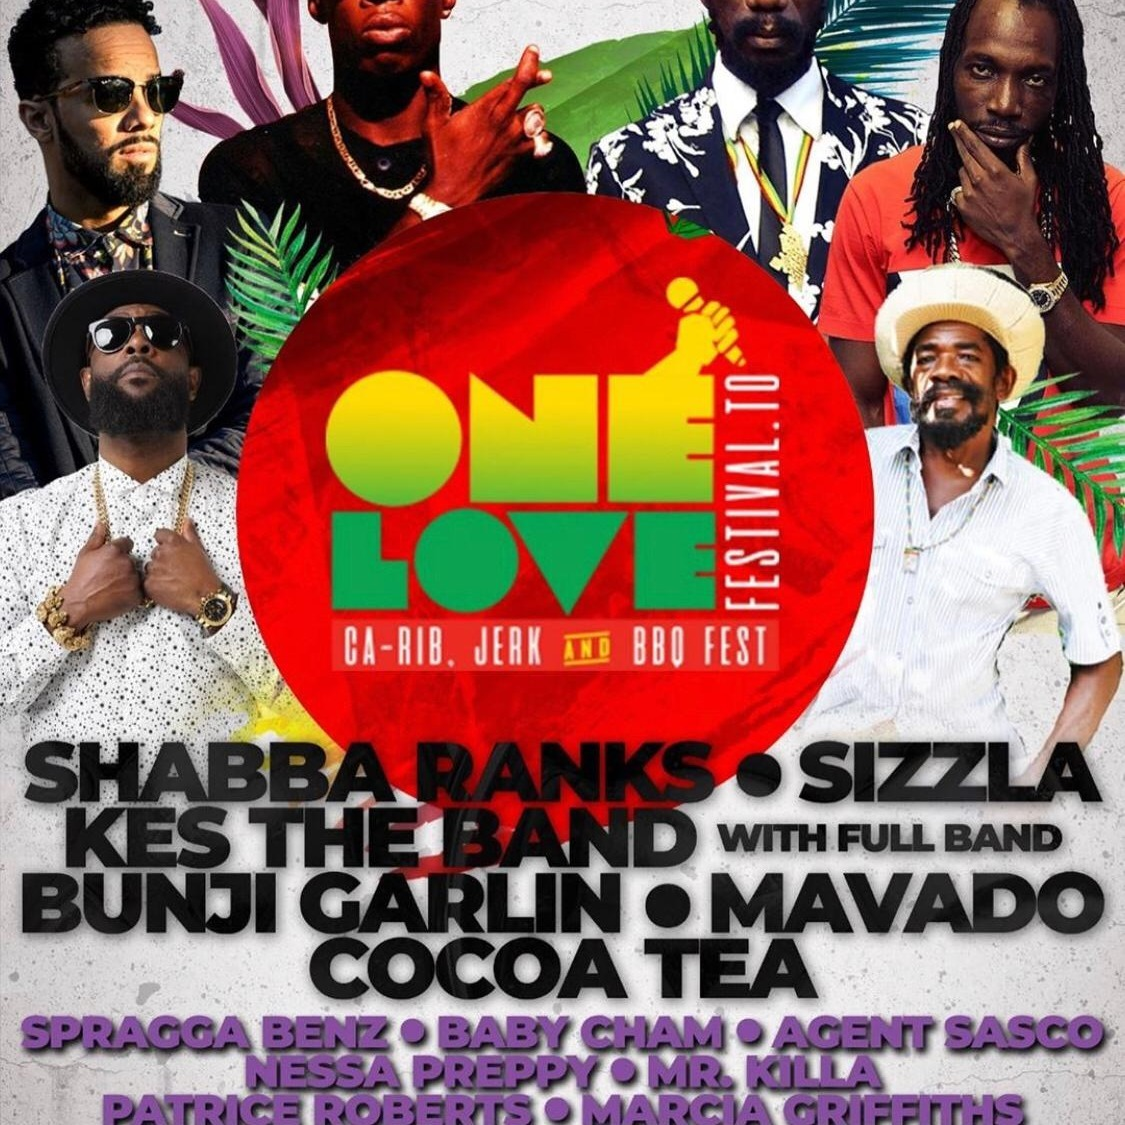 ONE LOVE FESTIVAL TORONTO - DAY 1 - LAUNCH & CANADIAN SHOWCASE